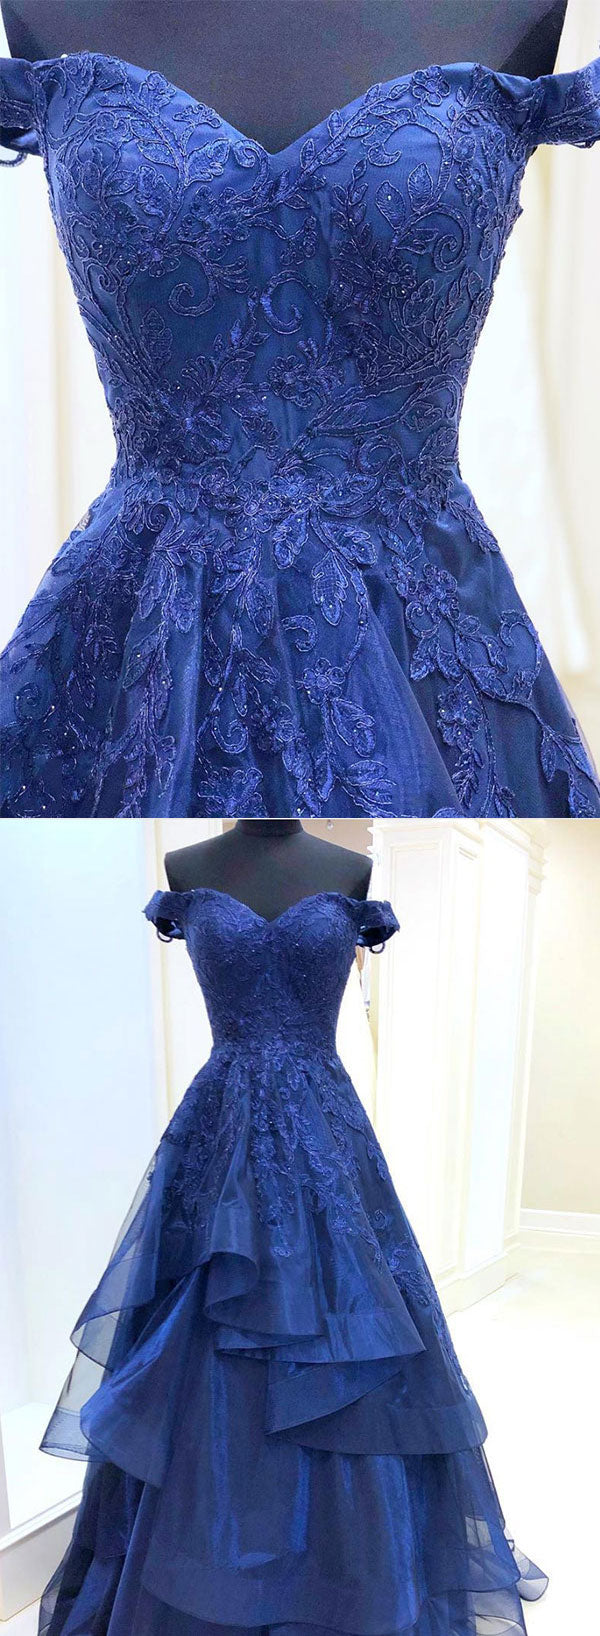 Dark blue tulle lace long prom dress, off shoulder evening dress